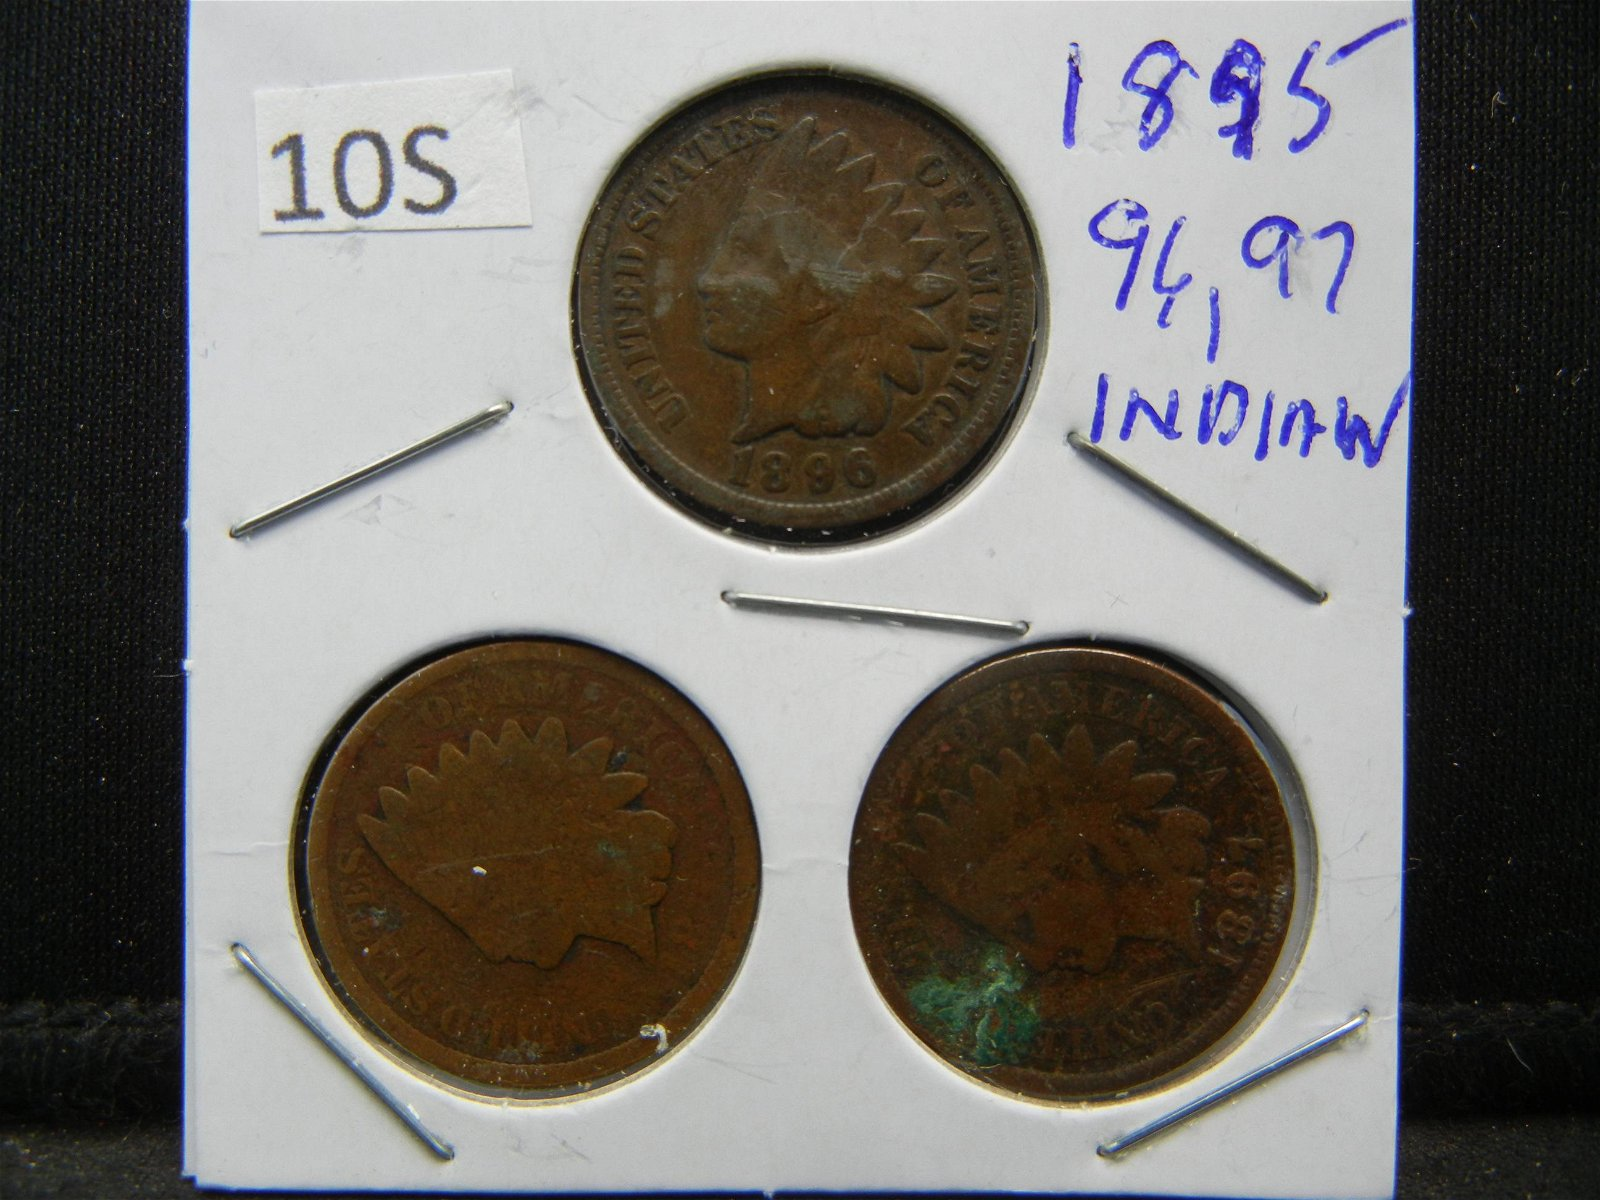 1895, 96, 97, Indian Head Cents